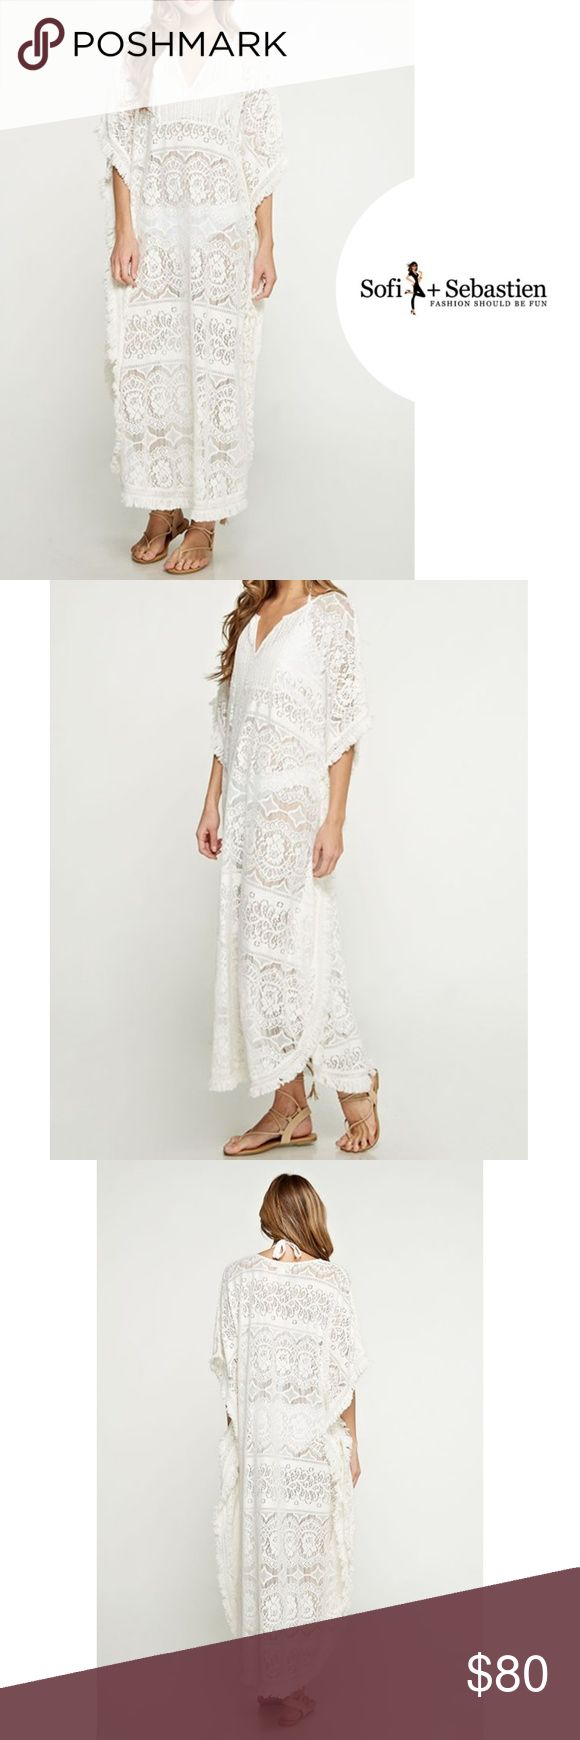 Gorgeous Cotton Long Lace Caftan Beach Cover Ivory Perfect for Honeymoons or the vacation of a lifetime! 100% soft  cotton with fringe, kimono sleeves and generous sizing. Quality compare to Anthropologie!  Sorry, NO TRADES  Price firm unless bundled Swim Coverups